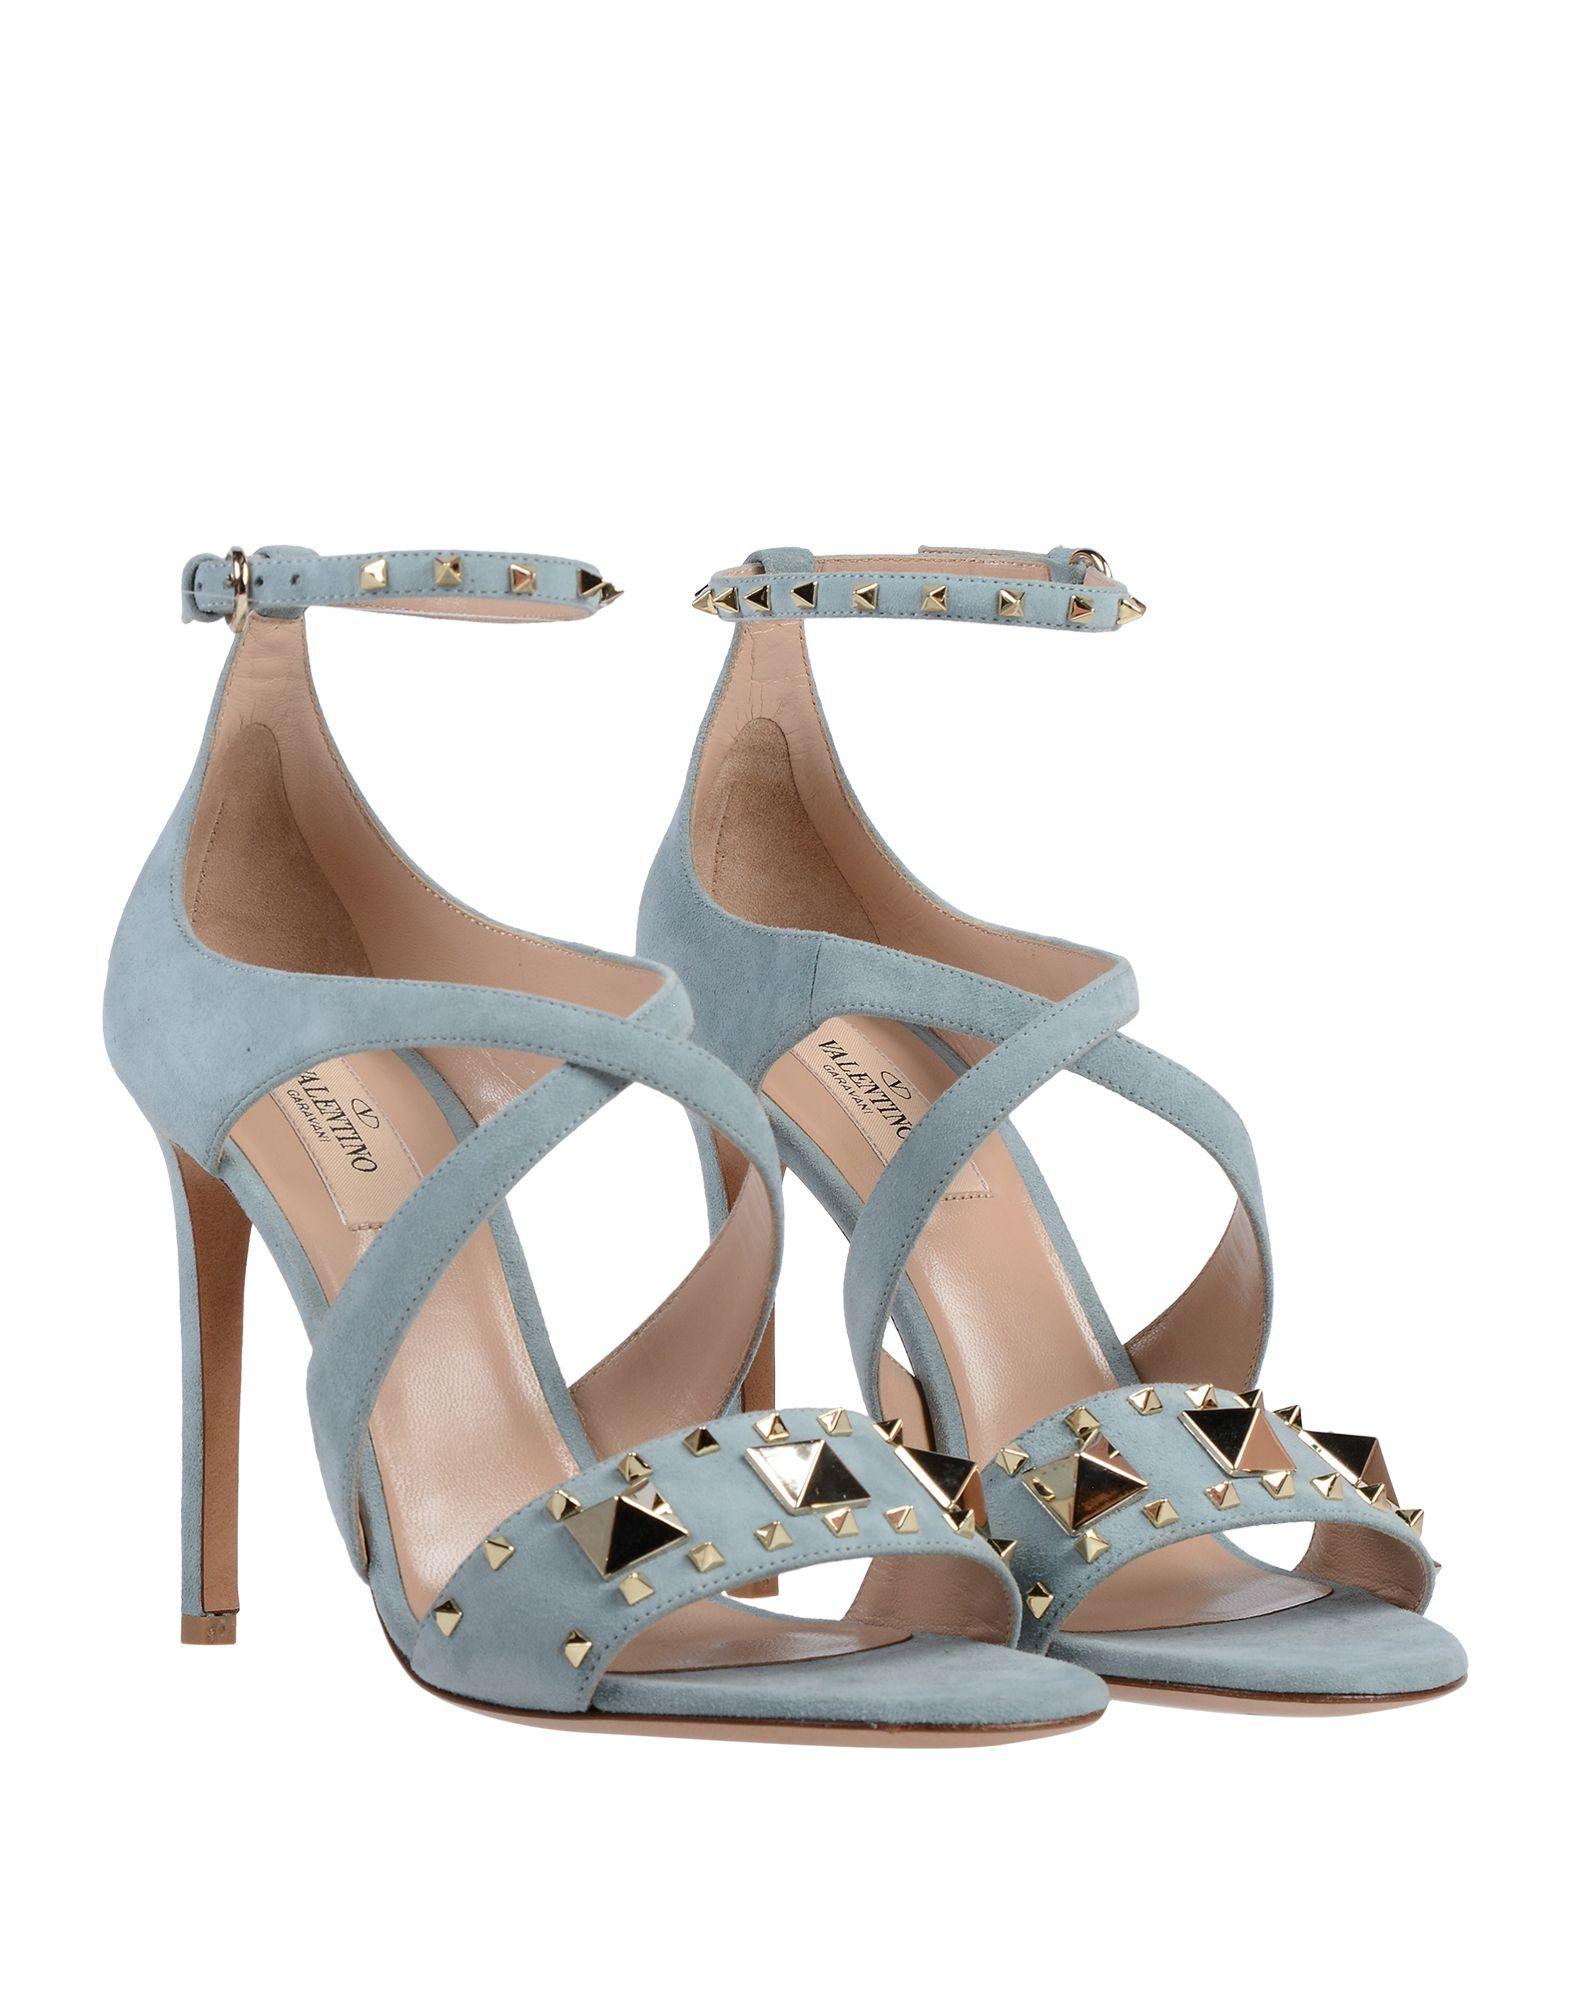 1ab266f02fee Valentino Sandals in Blue - Lyst